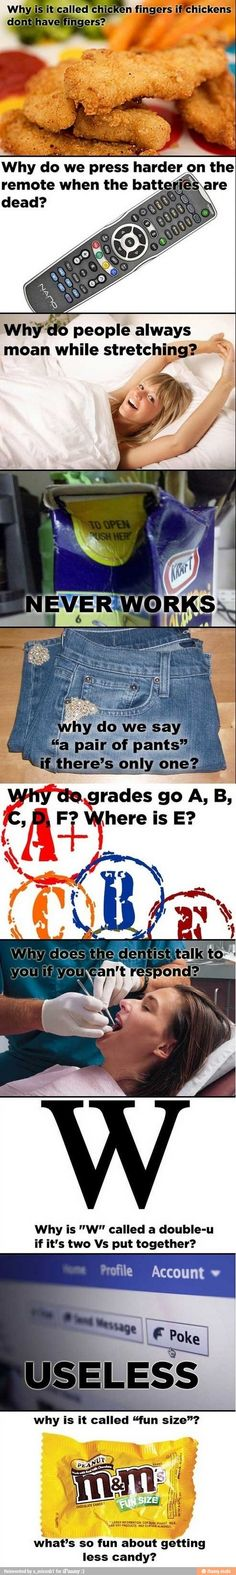 This is so right except in Britain, we do you have an E in the grading system